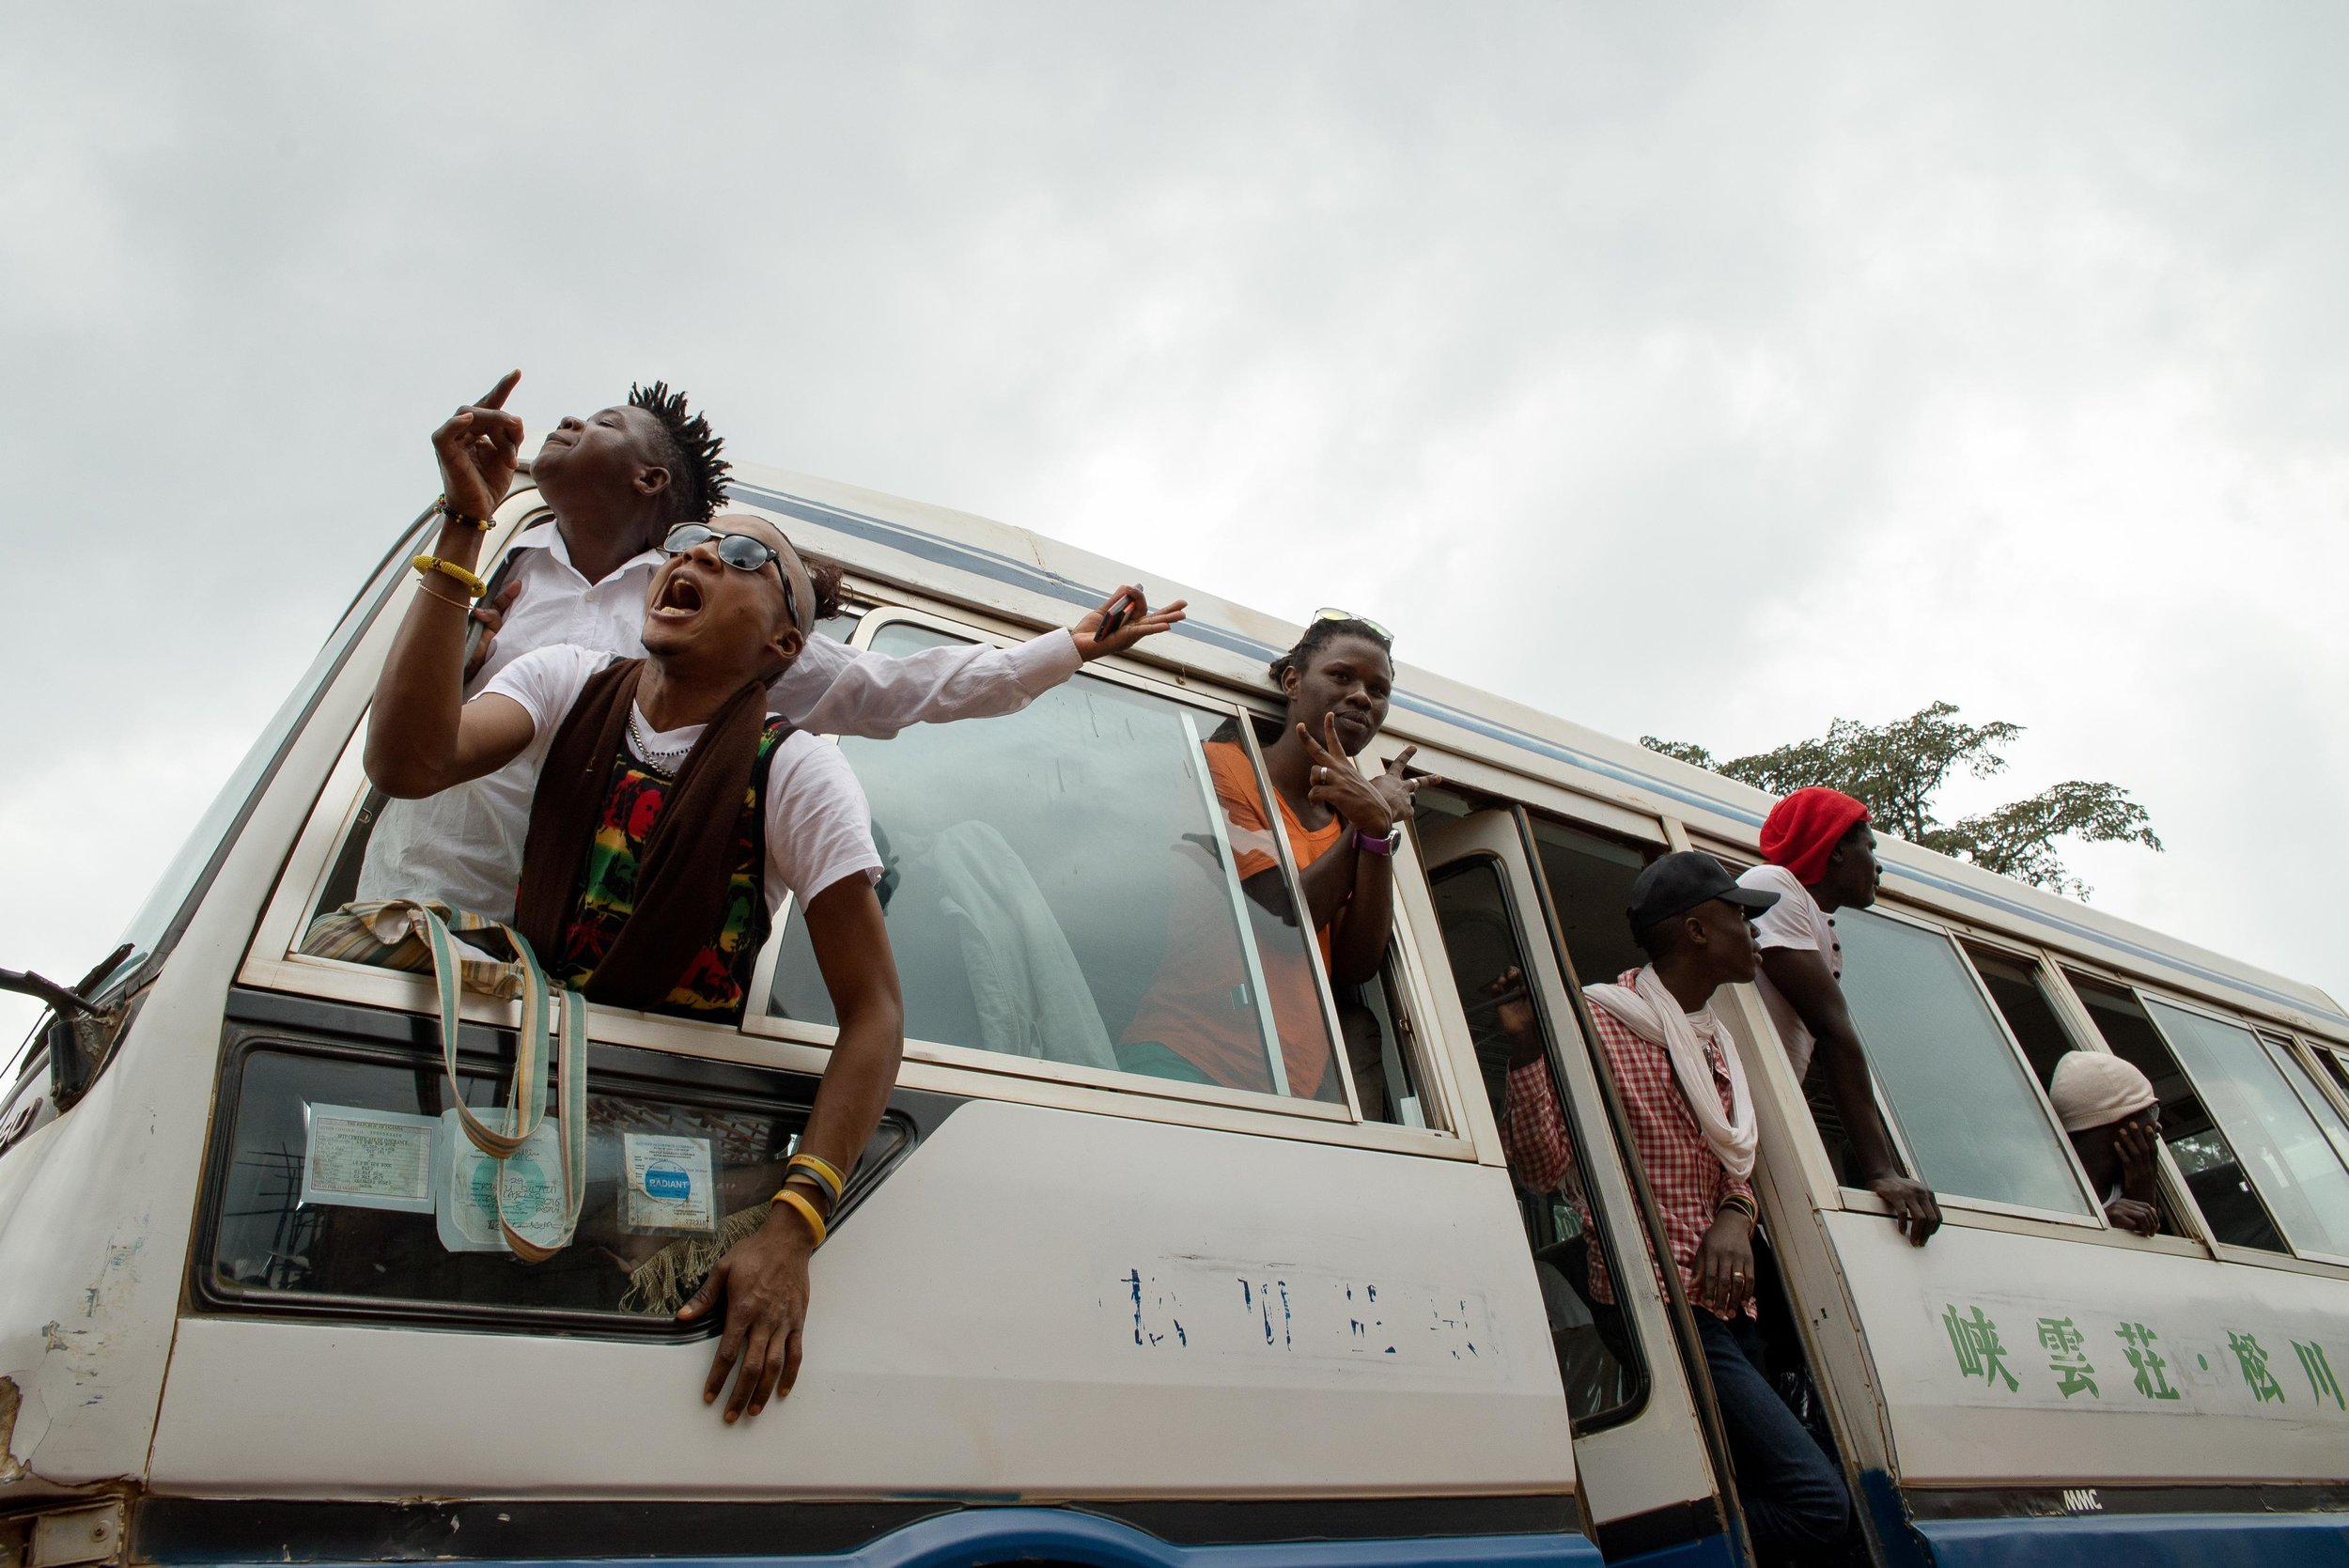 """Members of Uganda's gay and transgender community yell """"we want peace"""" after police forced them to leave the gay pride festival in Entebbe, Uganda, Saturday, Sept. 24, 2016. Photo: Katie G. Nelson"""